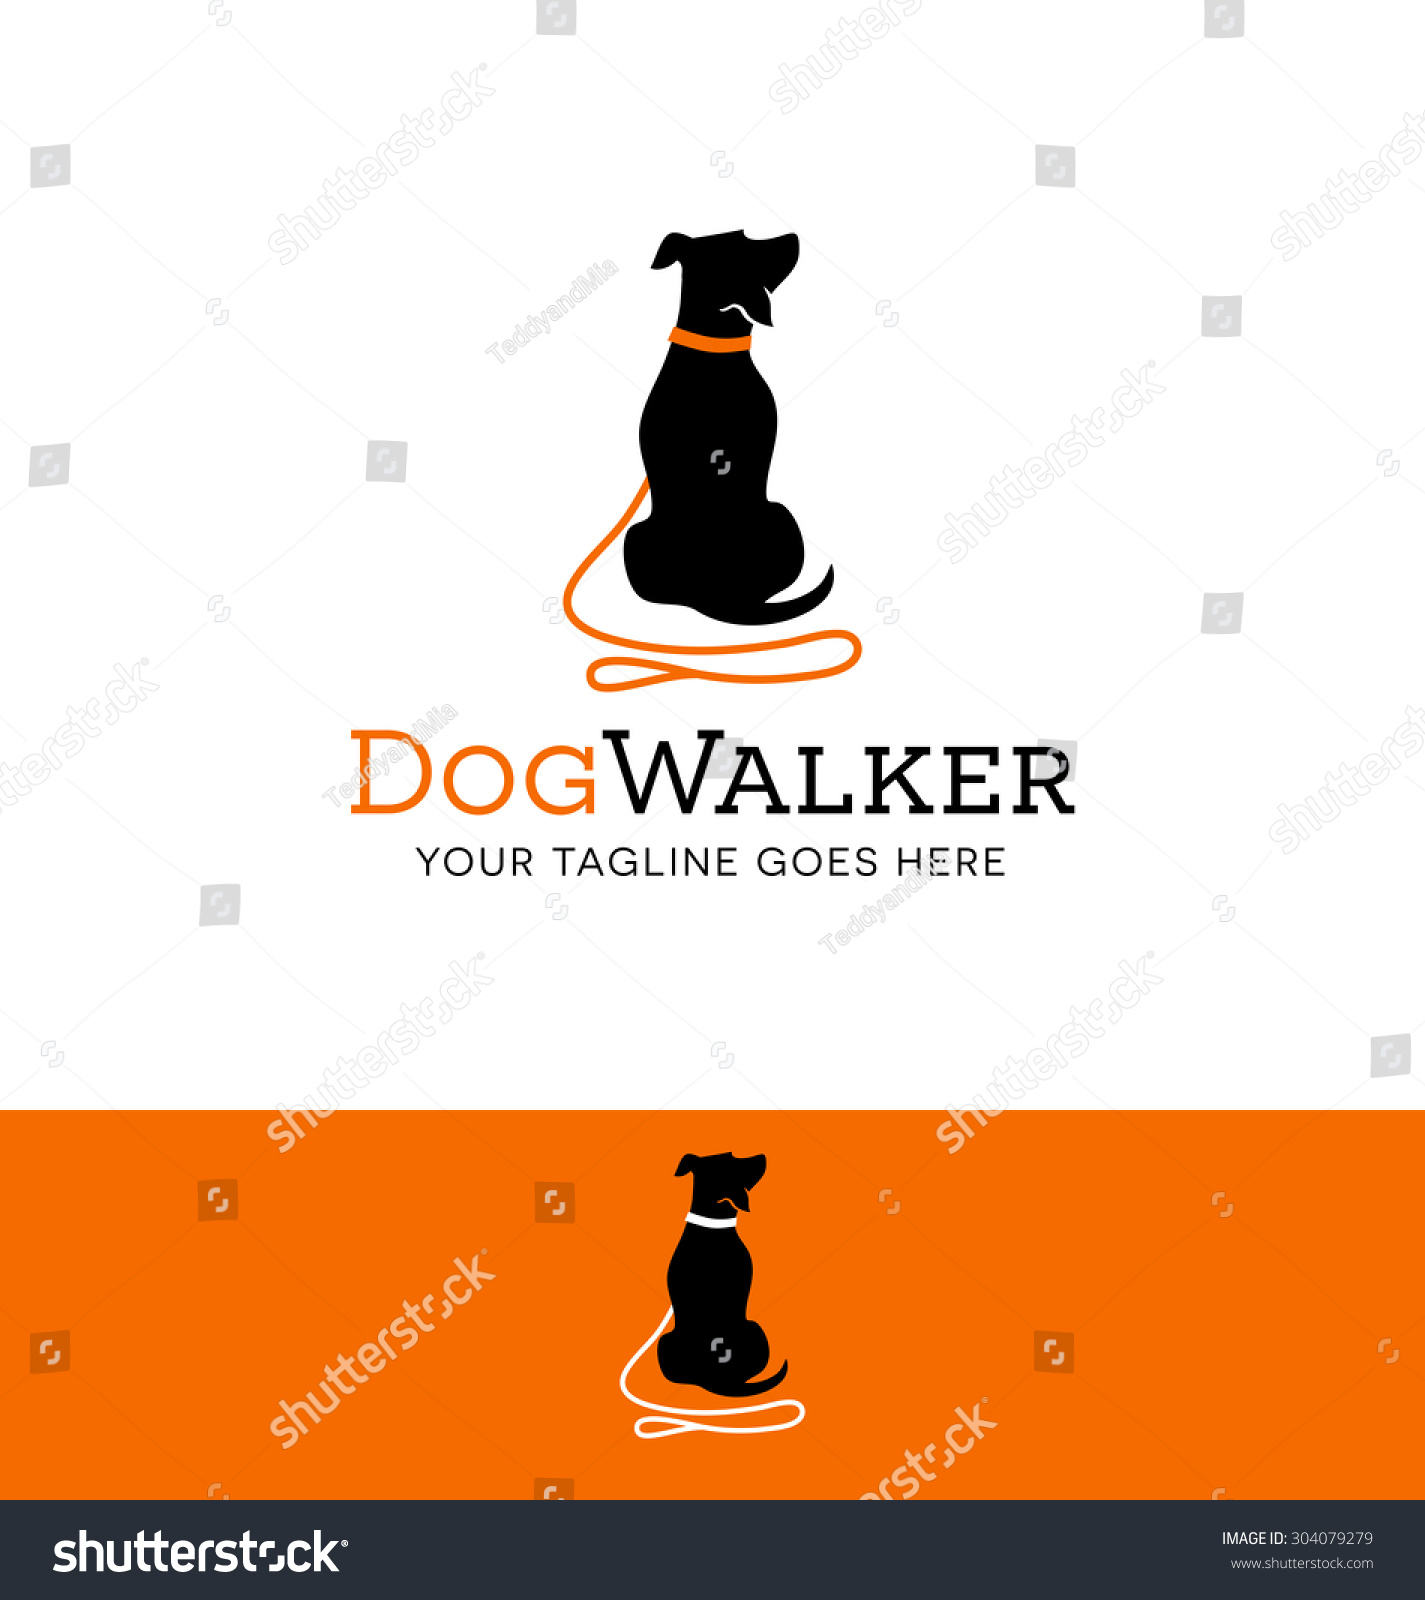 dog walker how to become